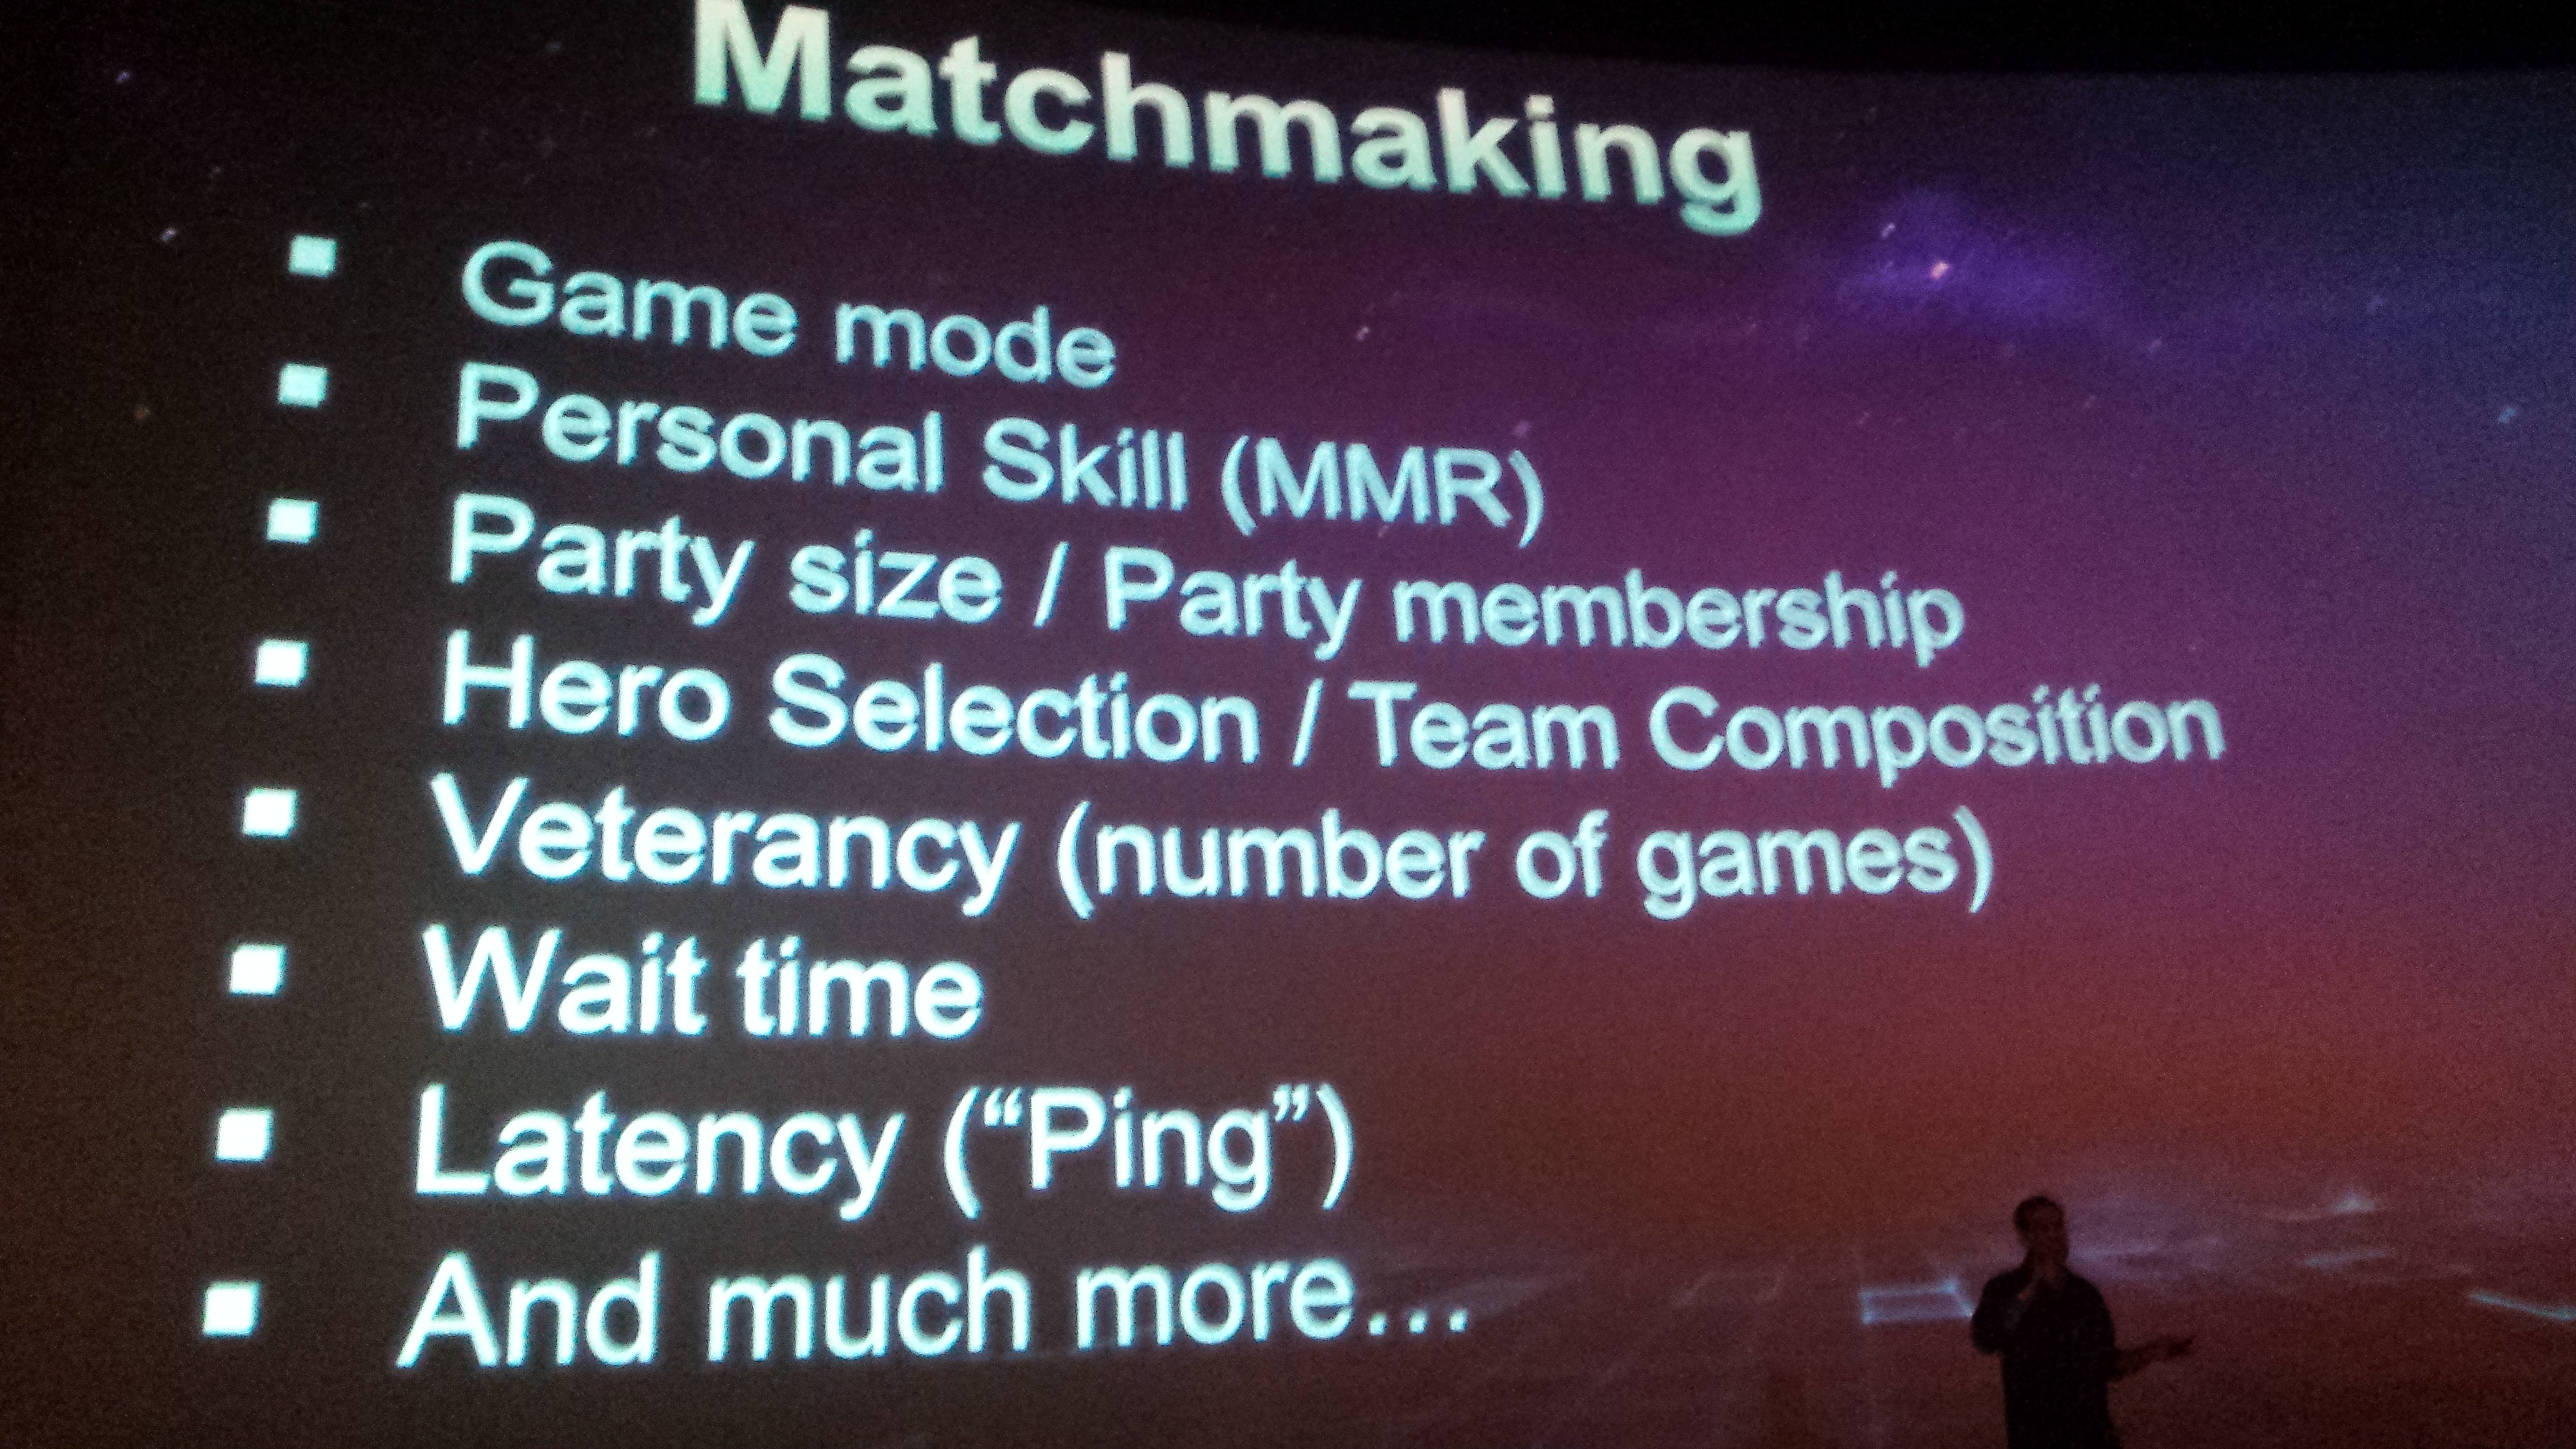 What goes into Matchmaking